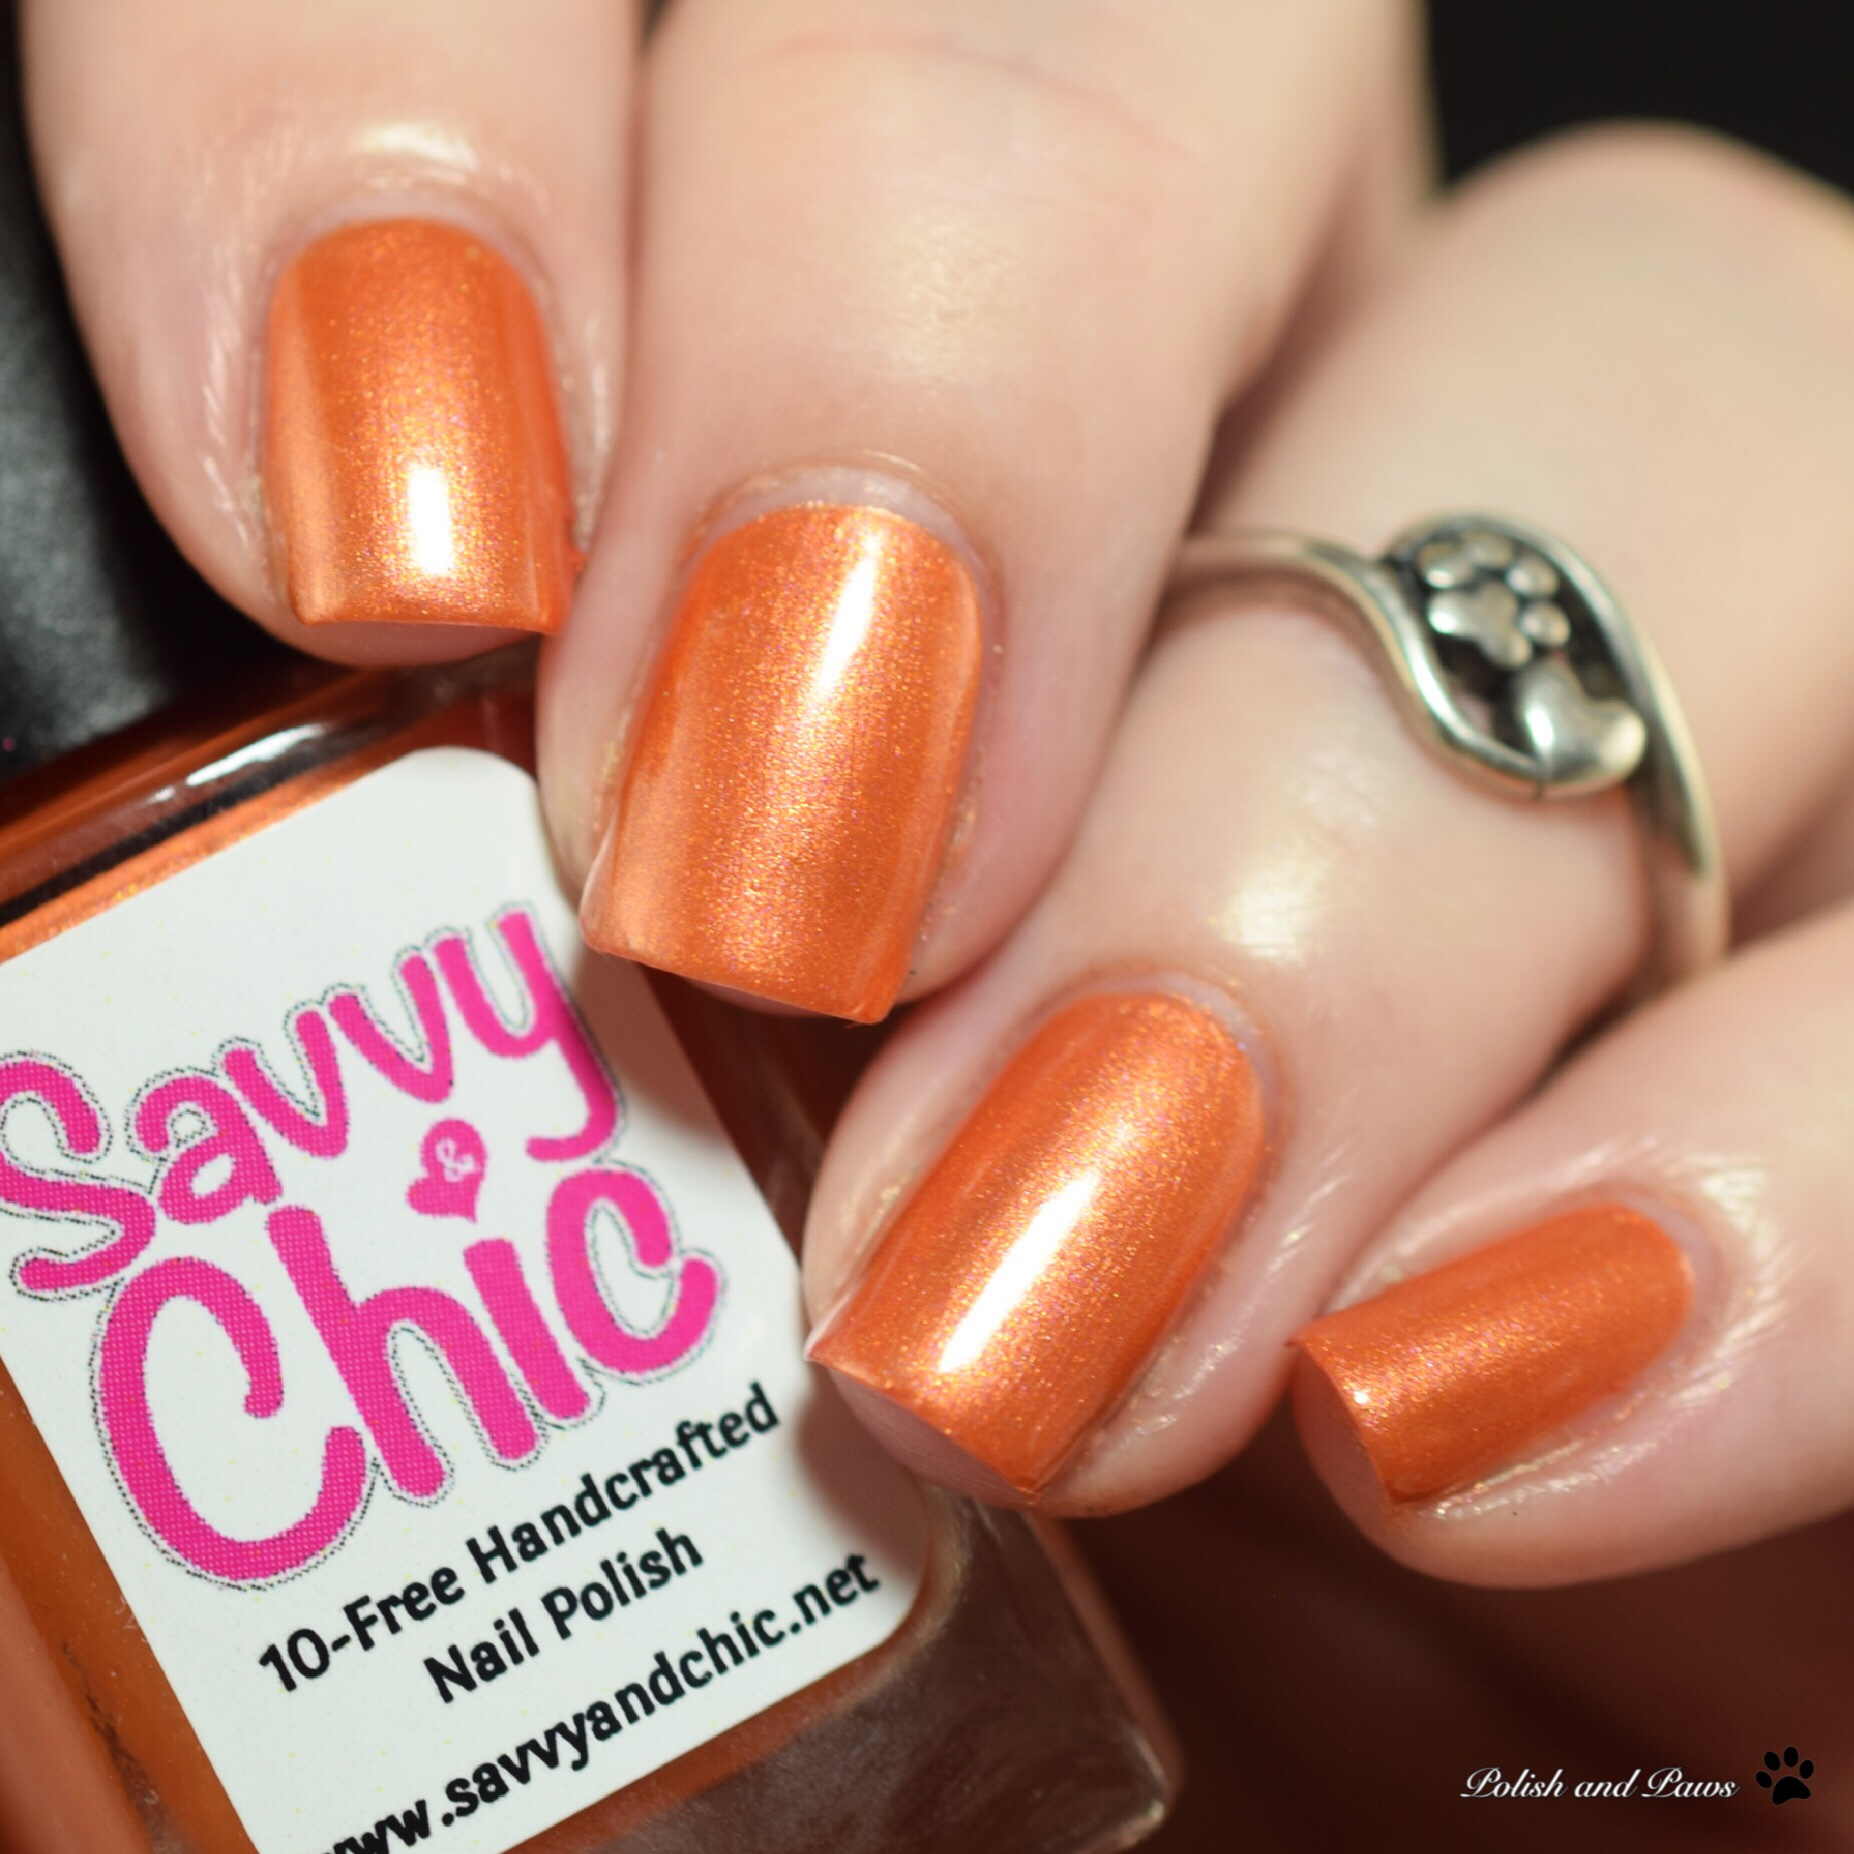 Savvy & Chic Pumpkin Patch